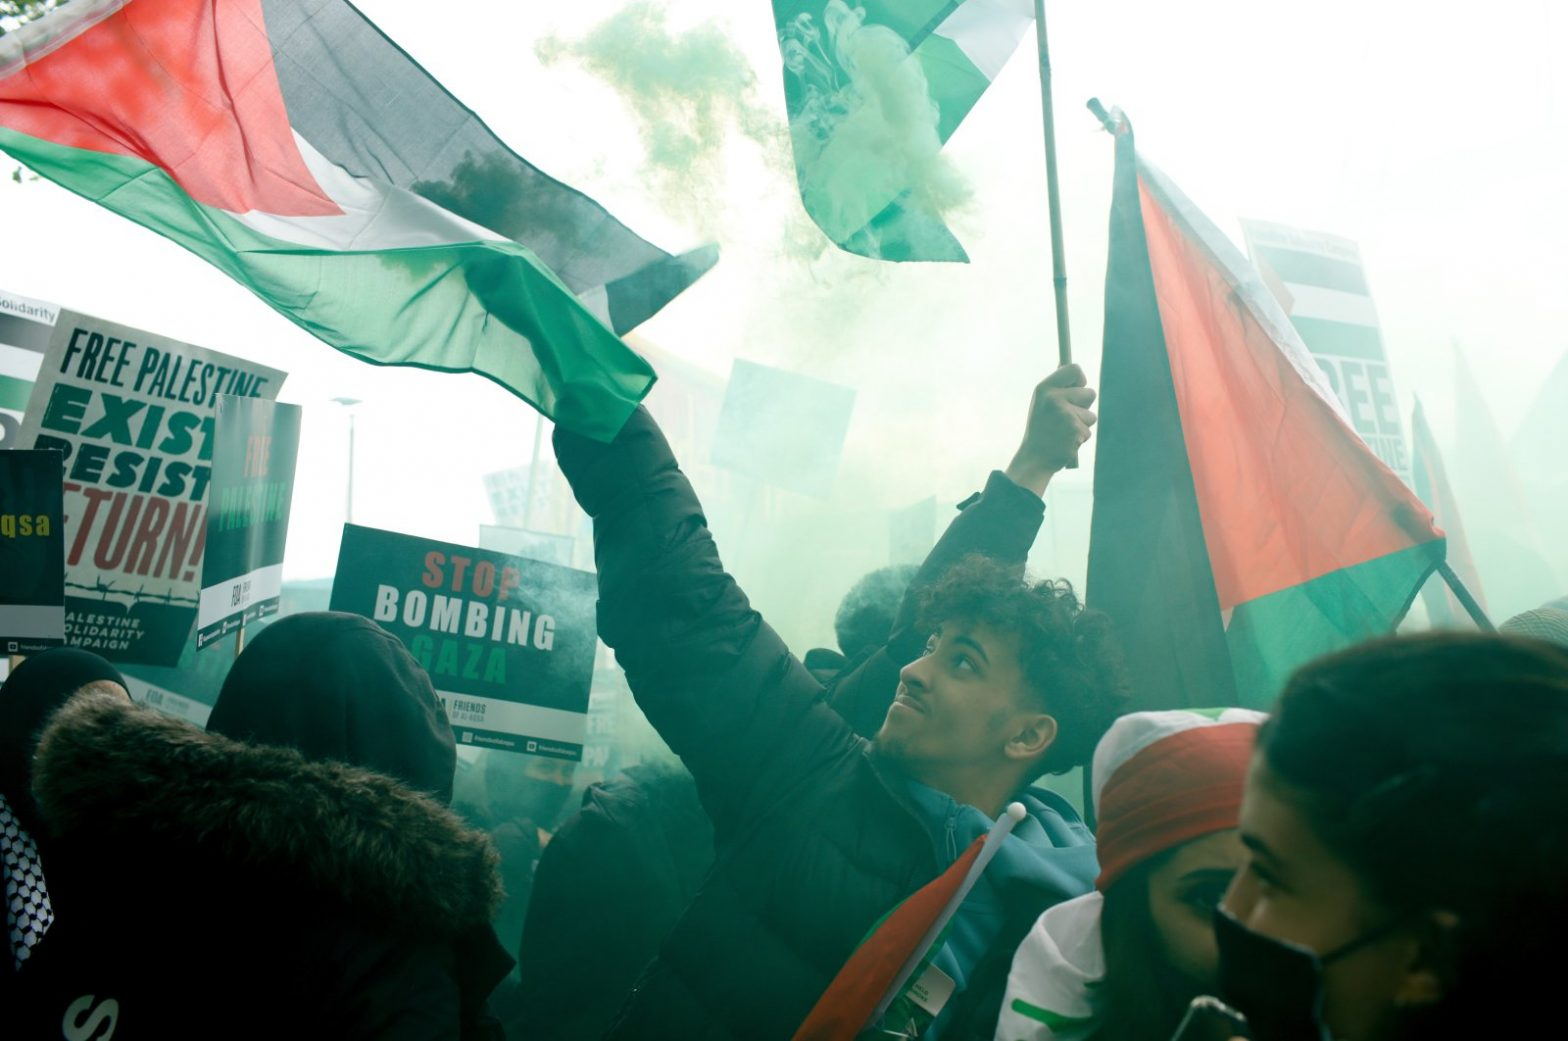 celebrities-in-solidarity-with-palestine-face-mounting-pressure